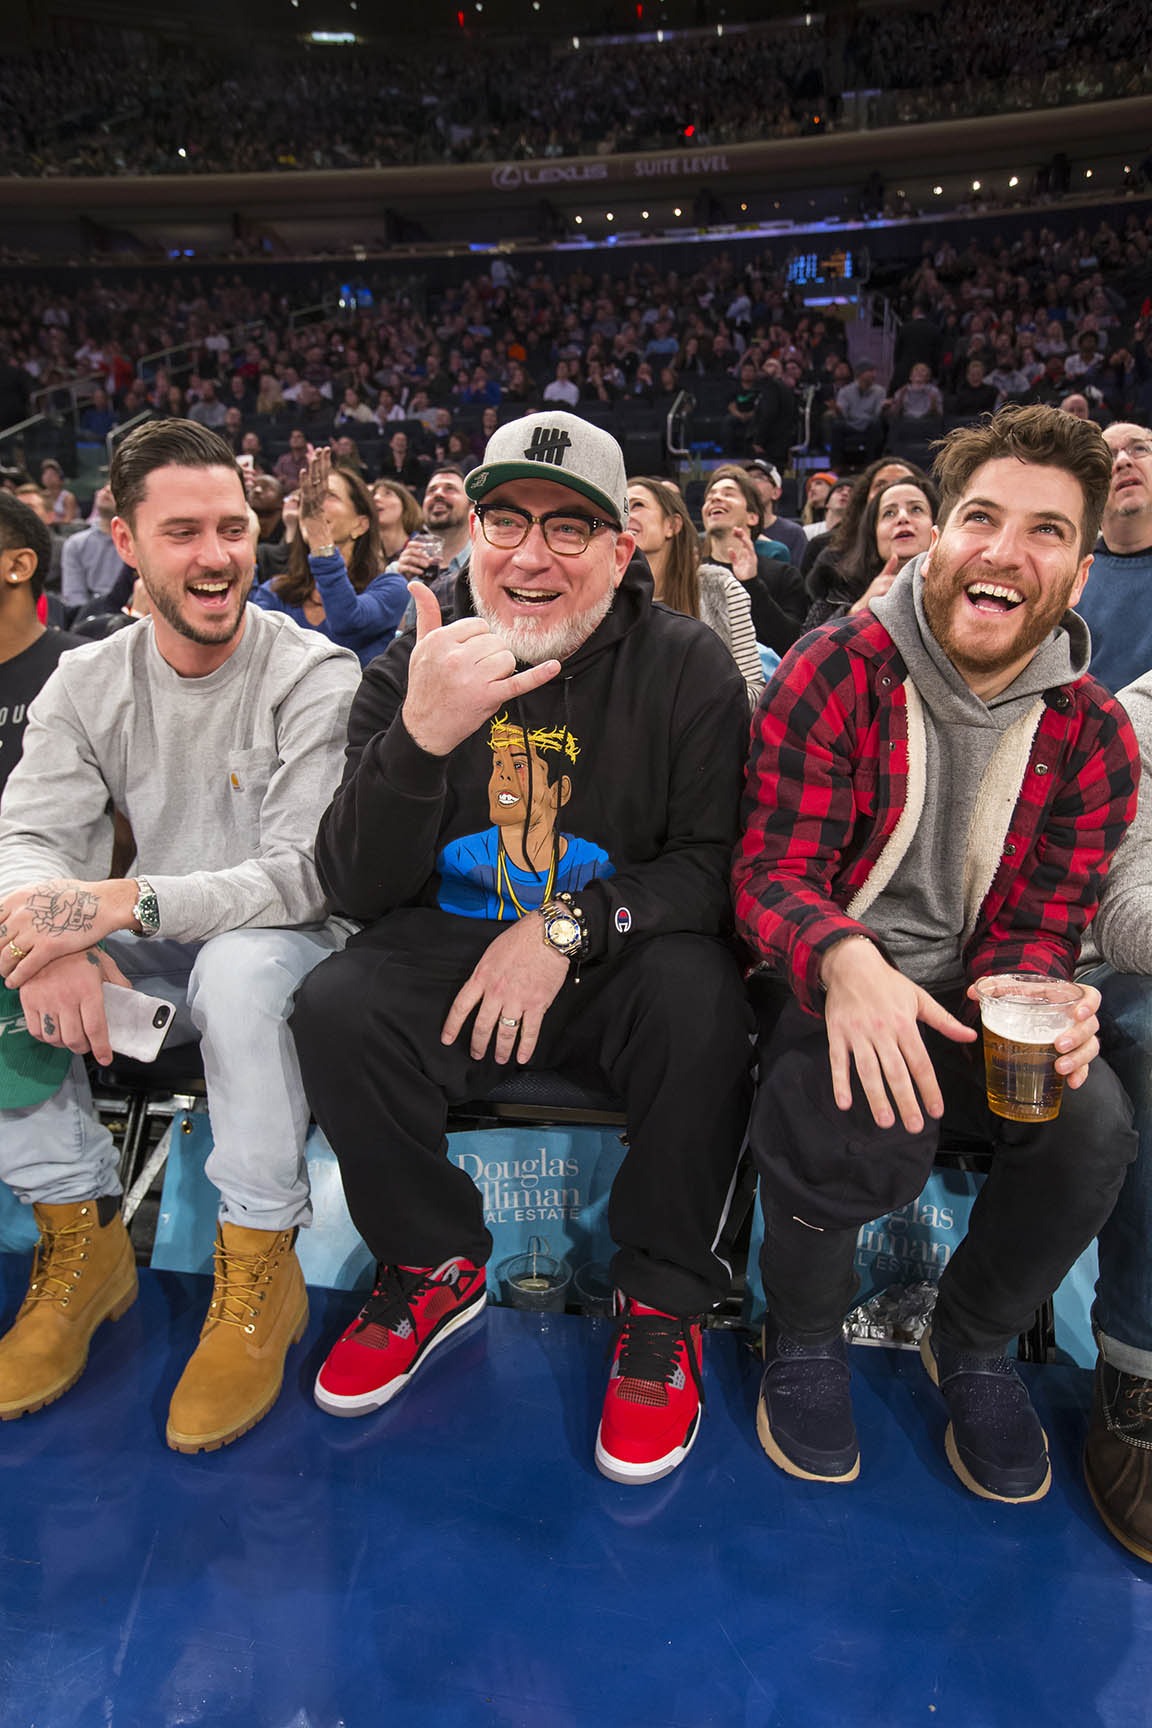 Knicks game celebrity row nashville